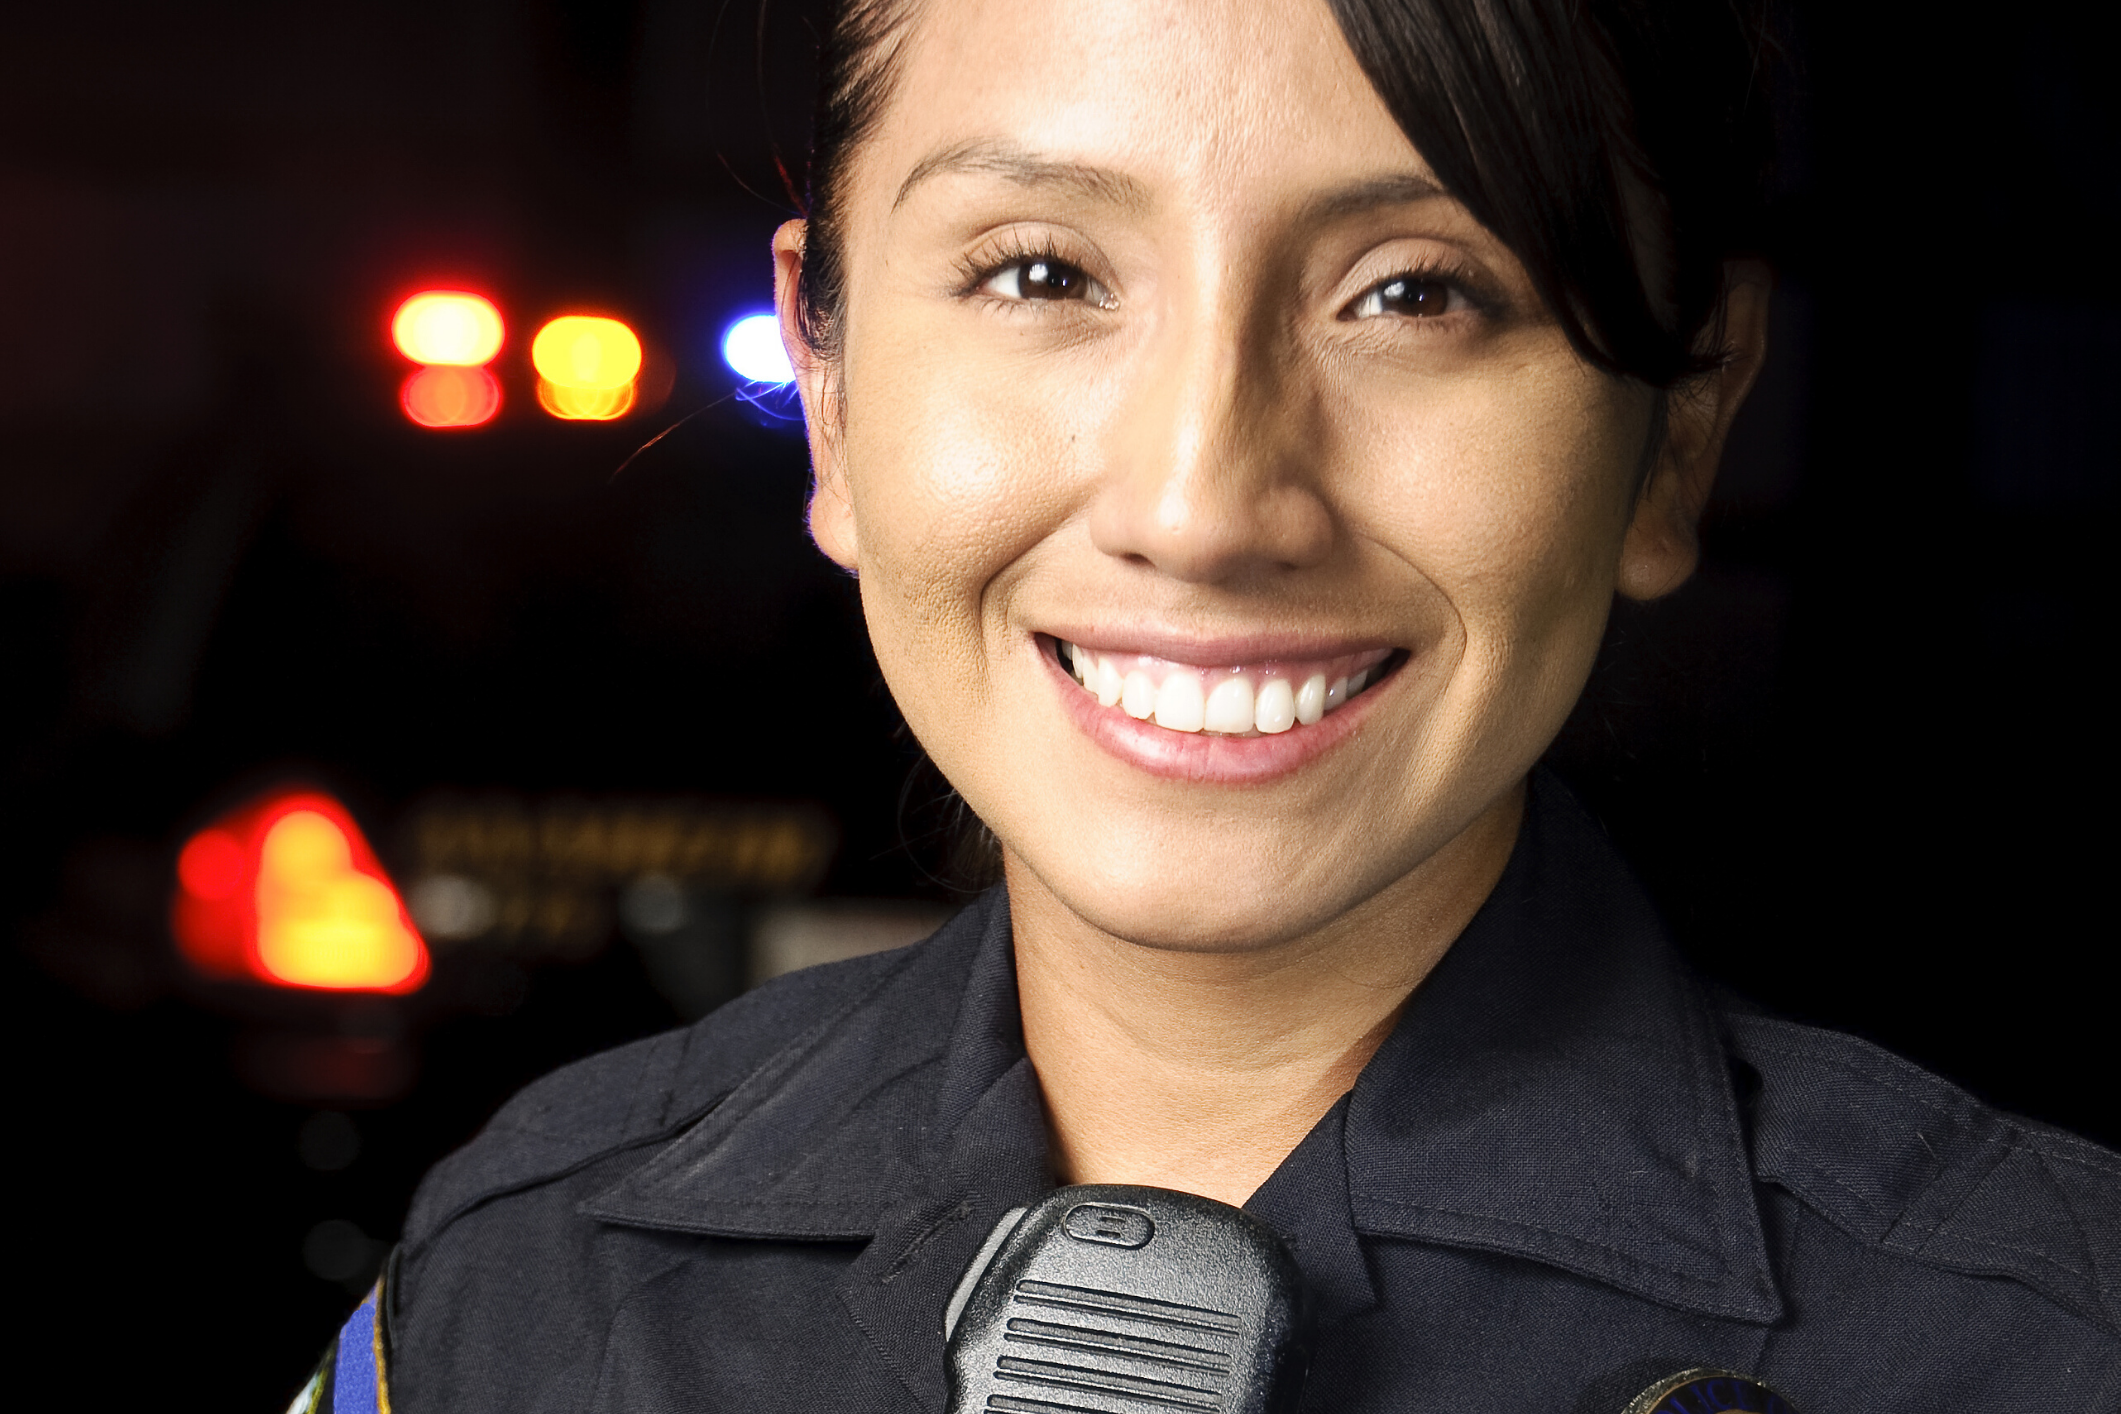 Good female police officer